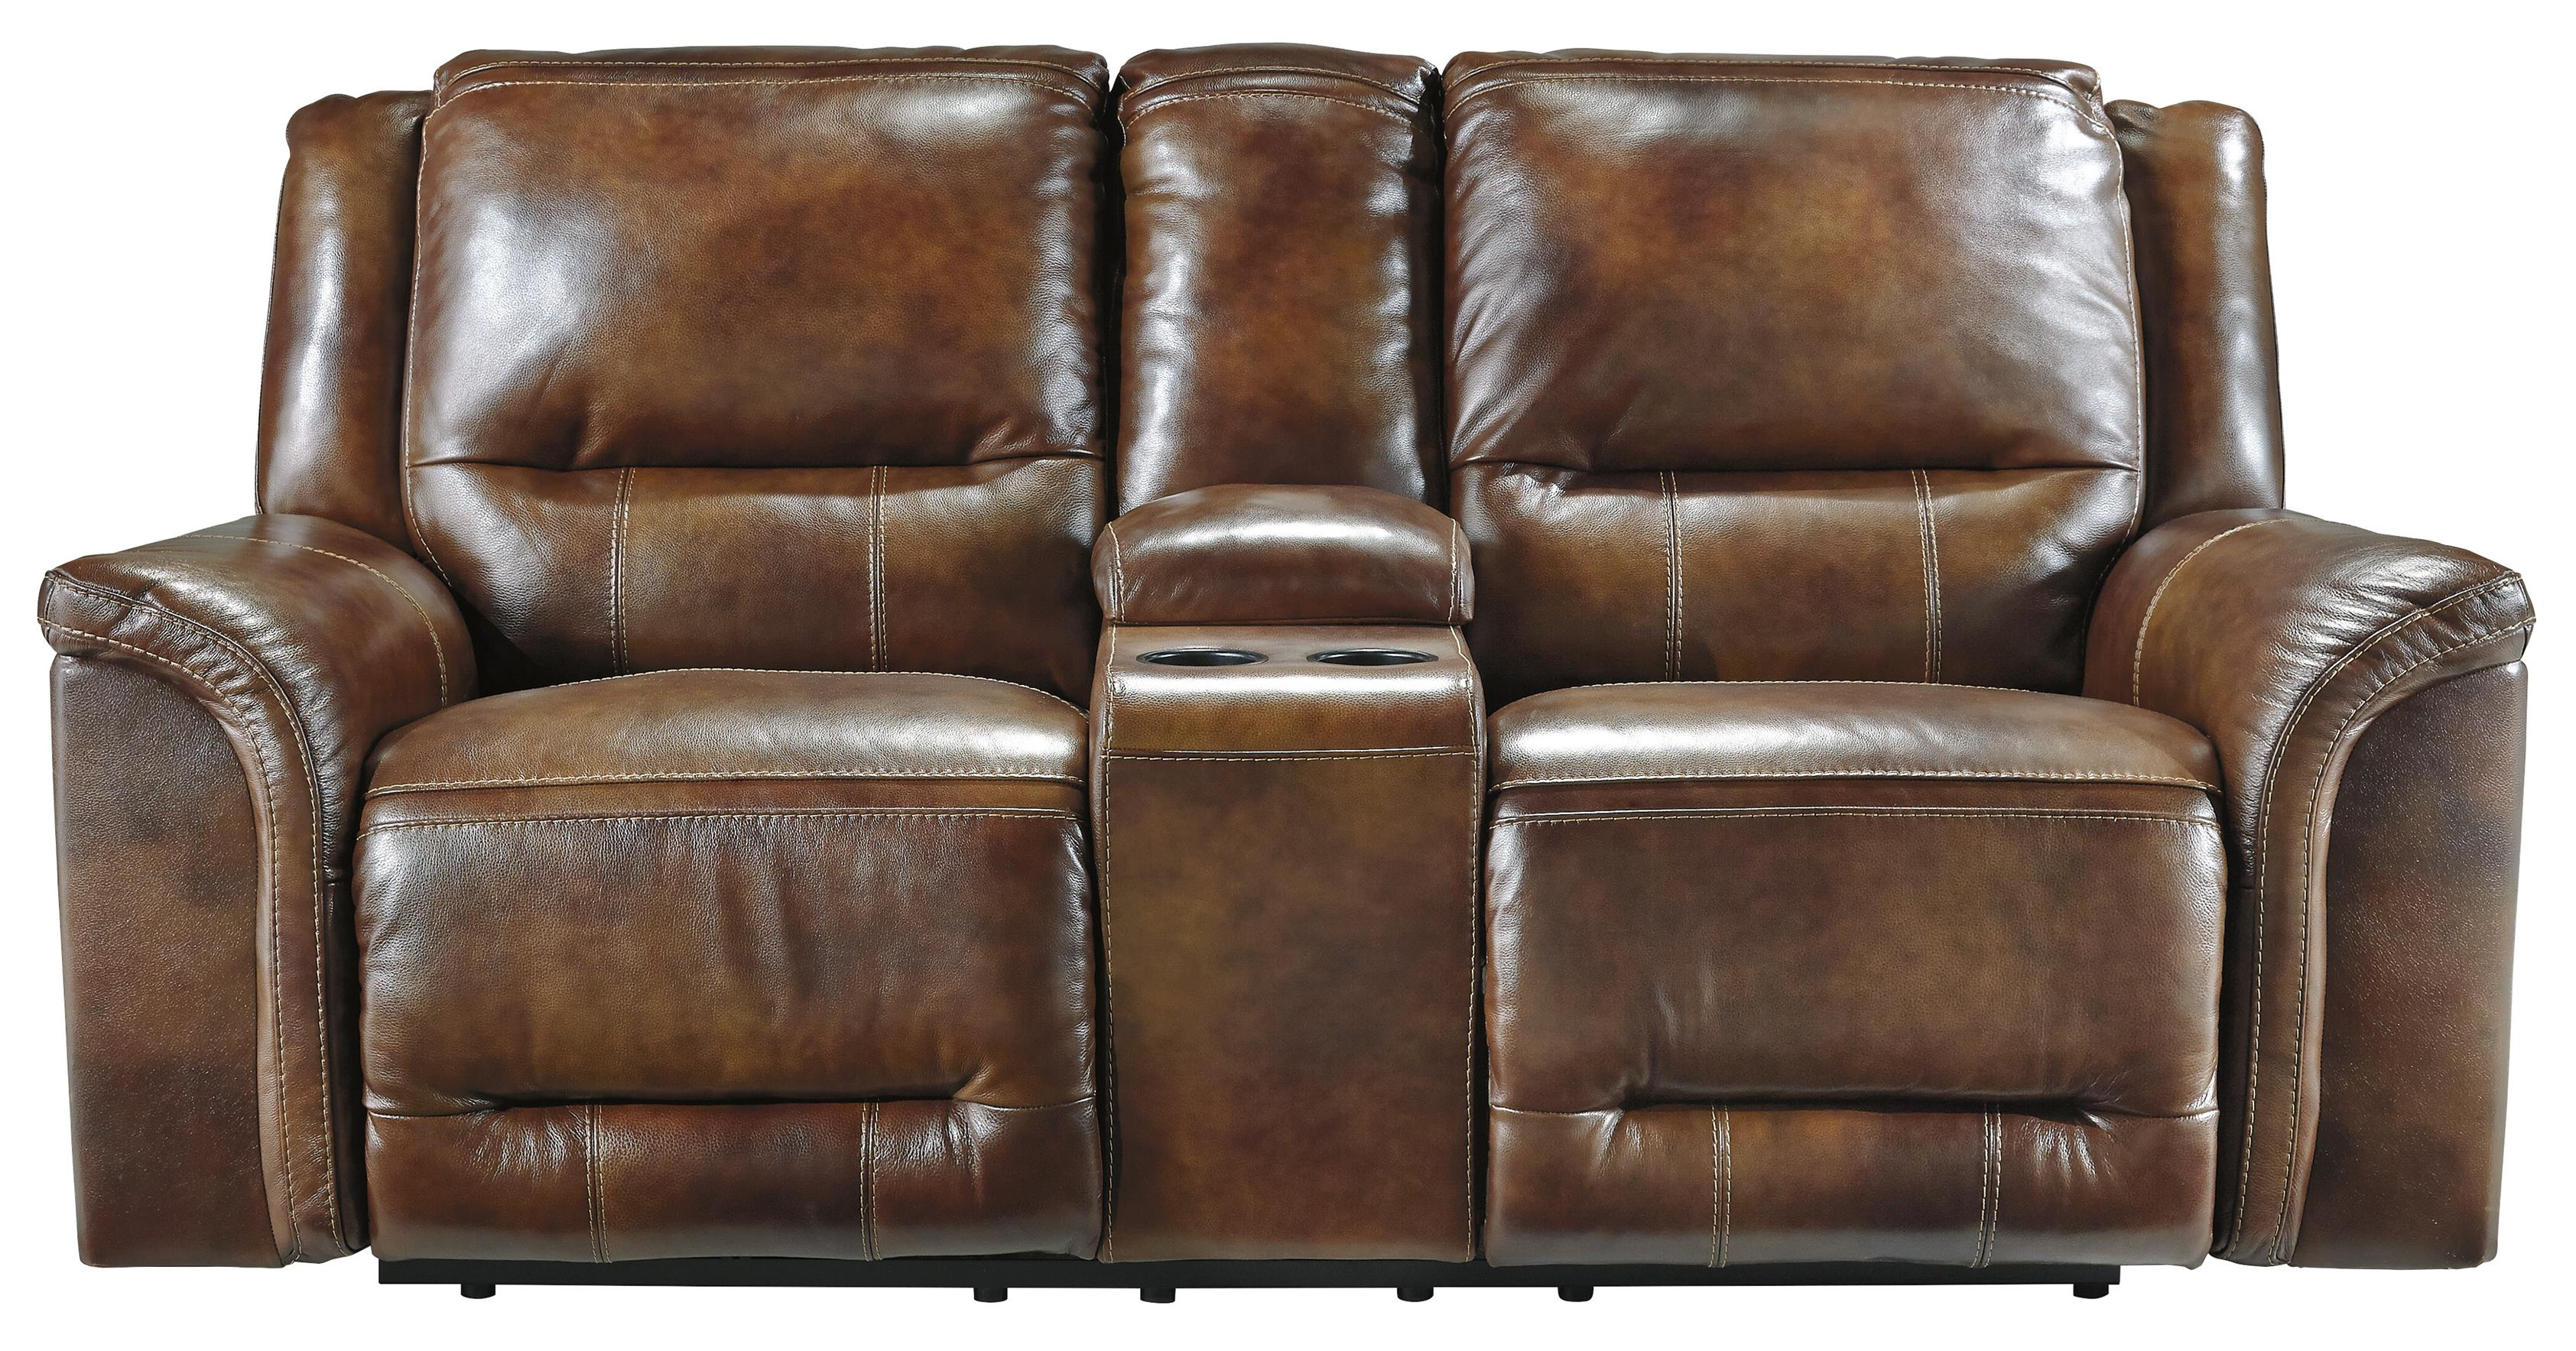 Signature Design by Ashley Jayron Double Reclining Power Loveseat w/ Console - Item Number: U7660096